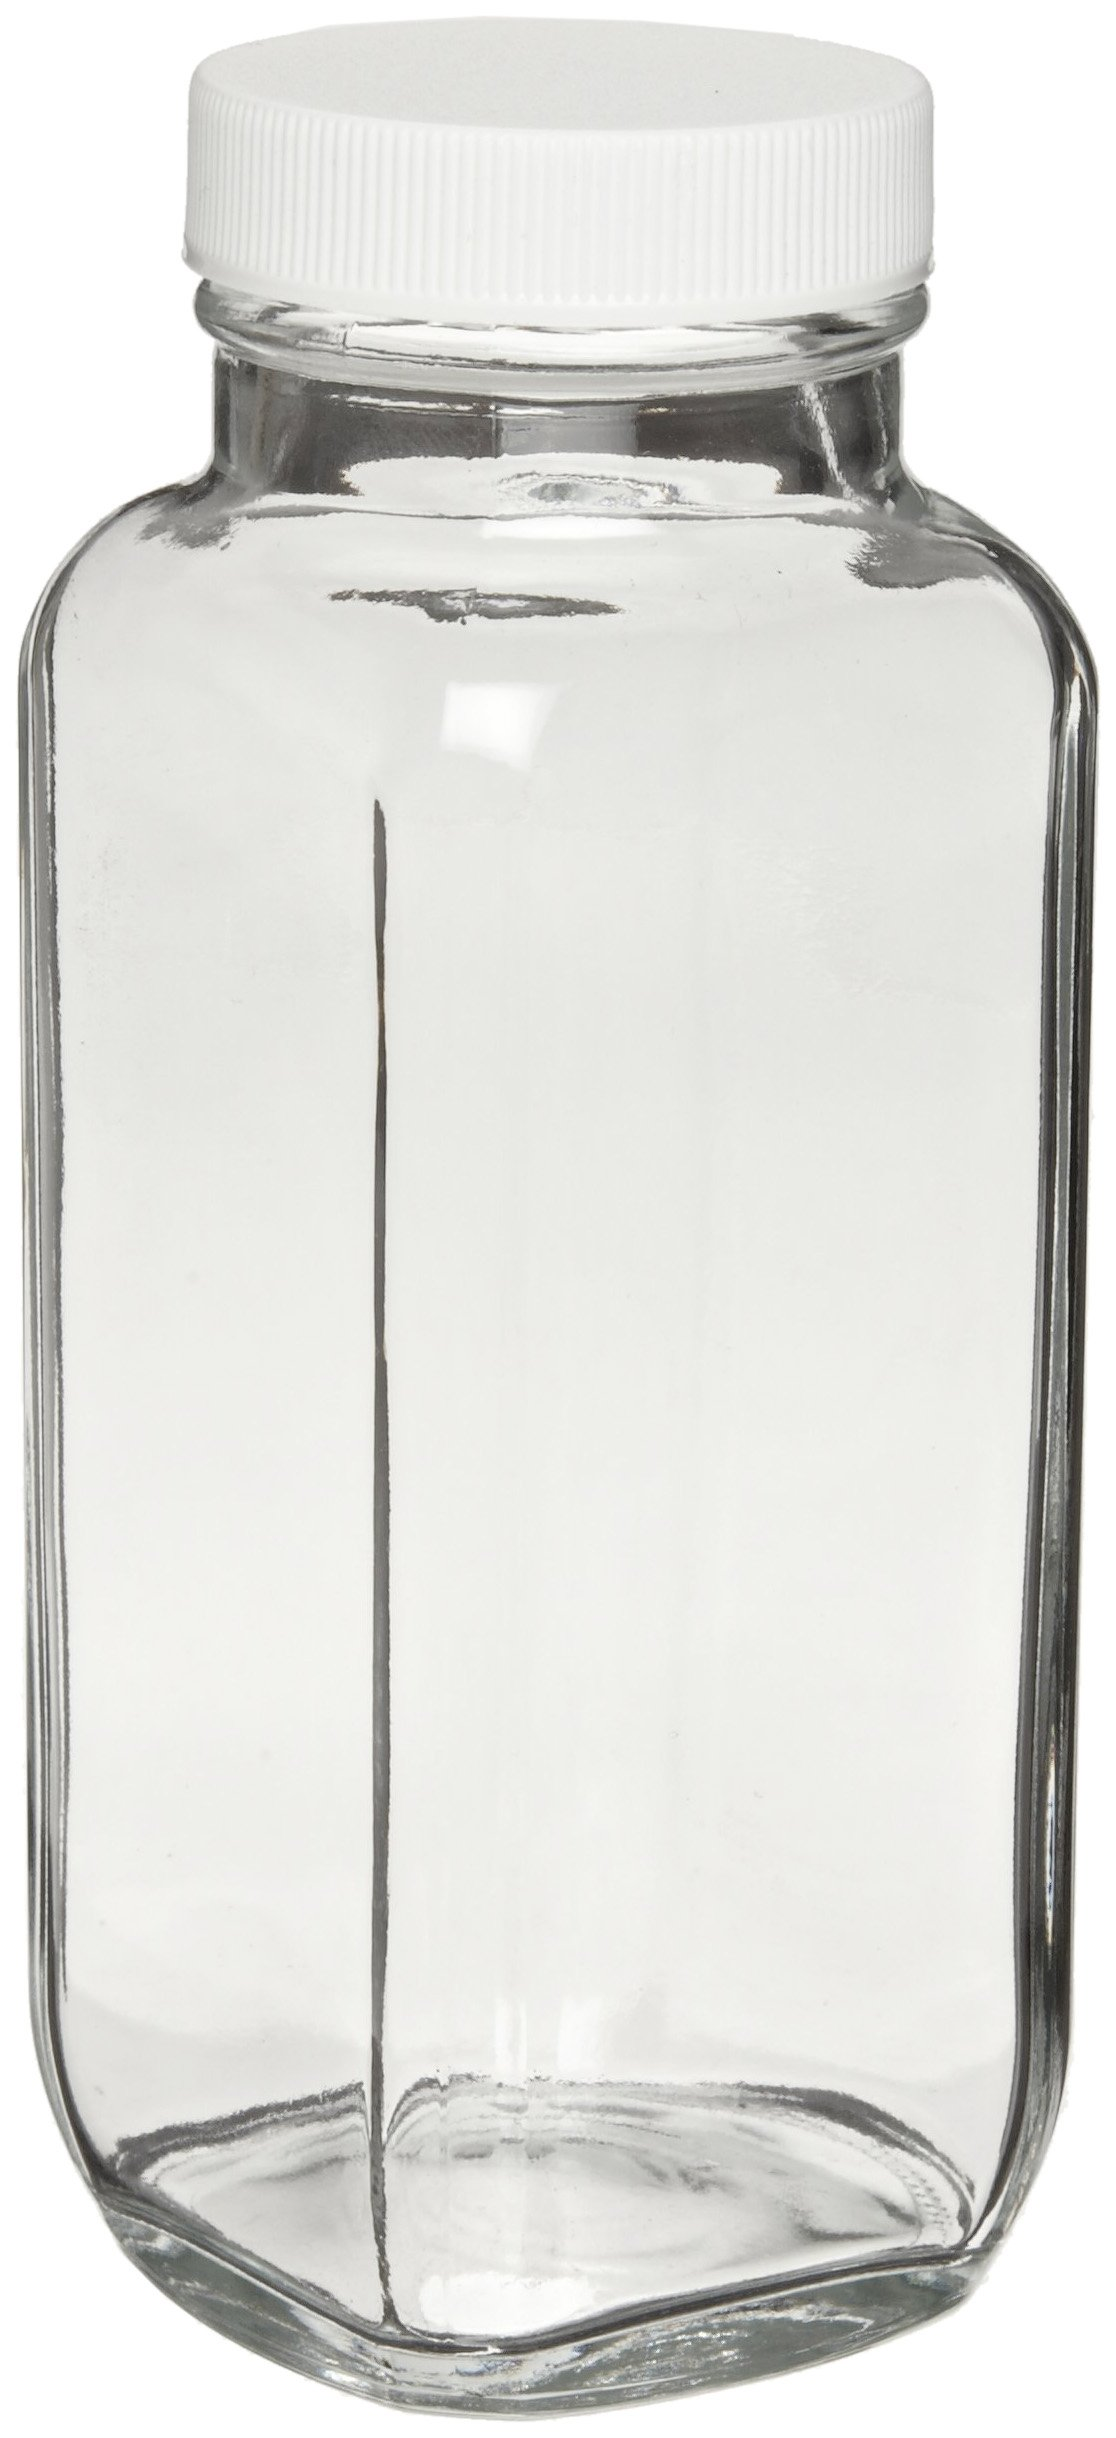 Wheaton W216896 French Square Bottle, Clear Glass, Capacity 8oz With 43-400 White Polypropylene Poly-Vinyl Lined Screw Cap, Diameter 56mm x 137mm (Case Of 84)